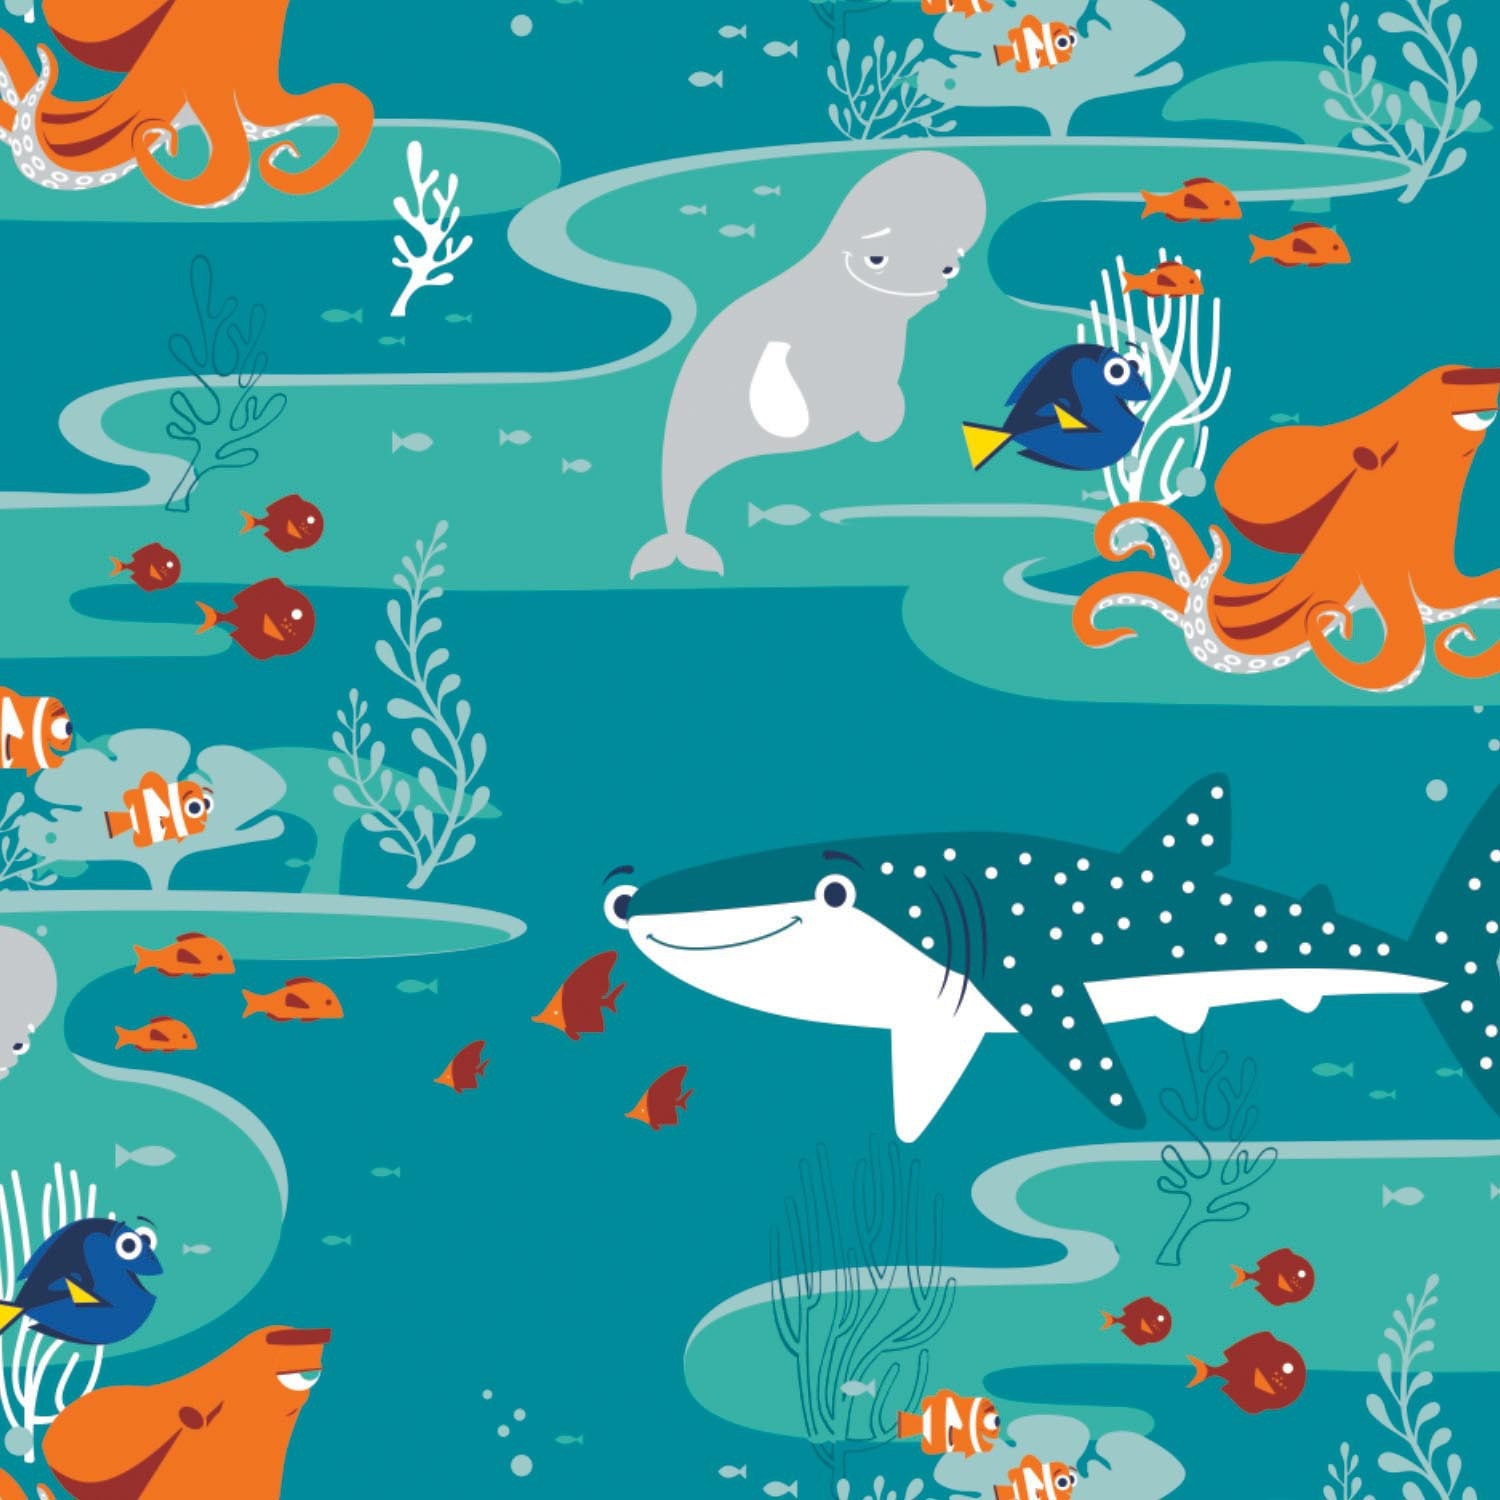 Dark turquoise finding dory children 39 s fabric by disney for Kids character fabric